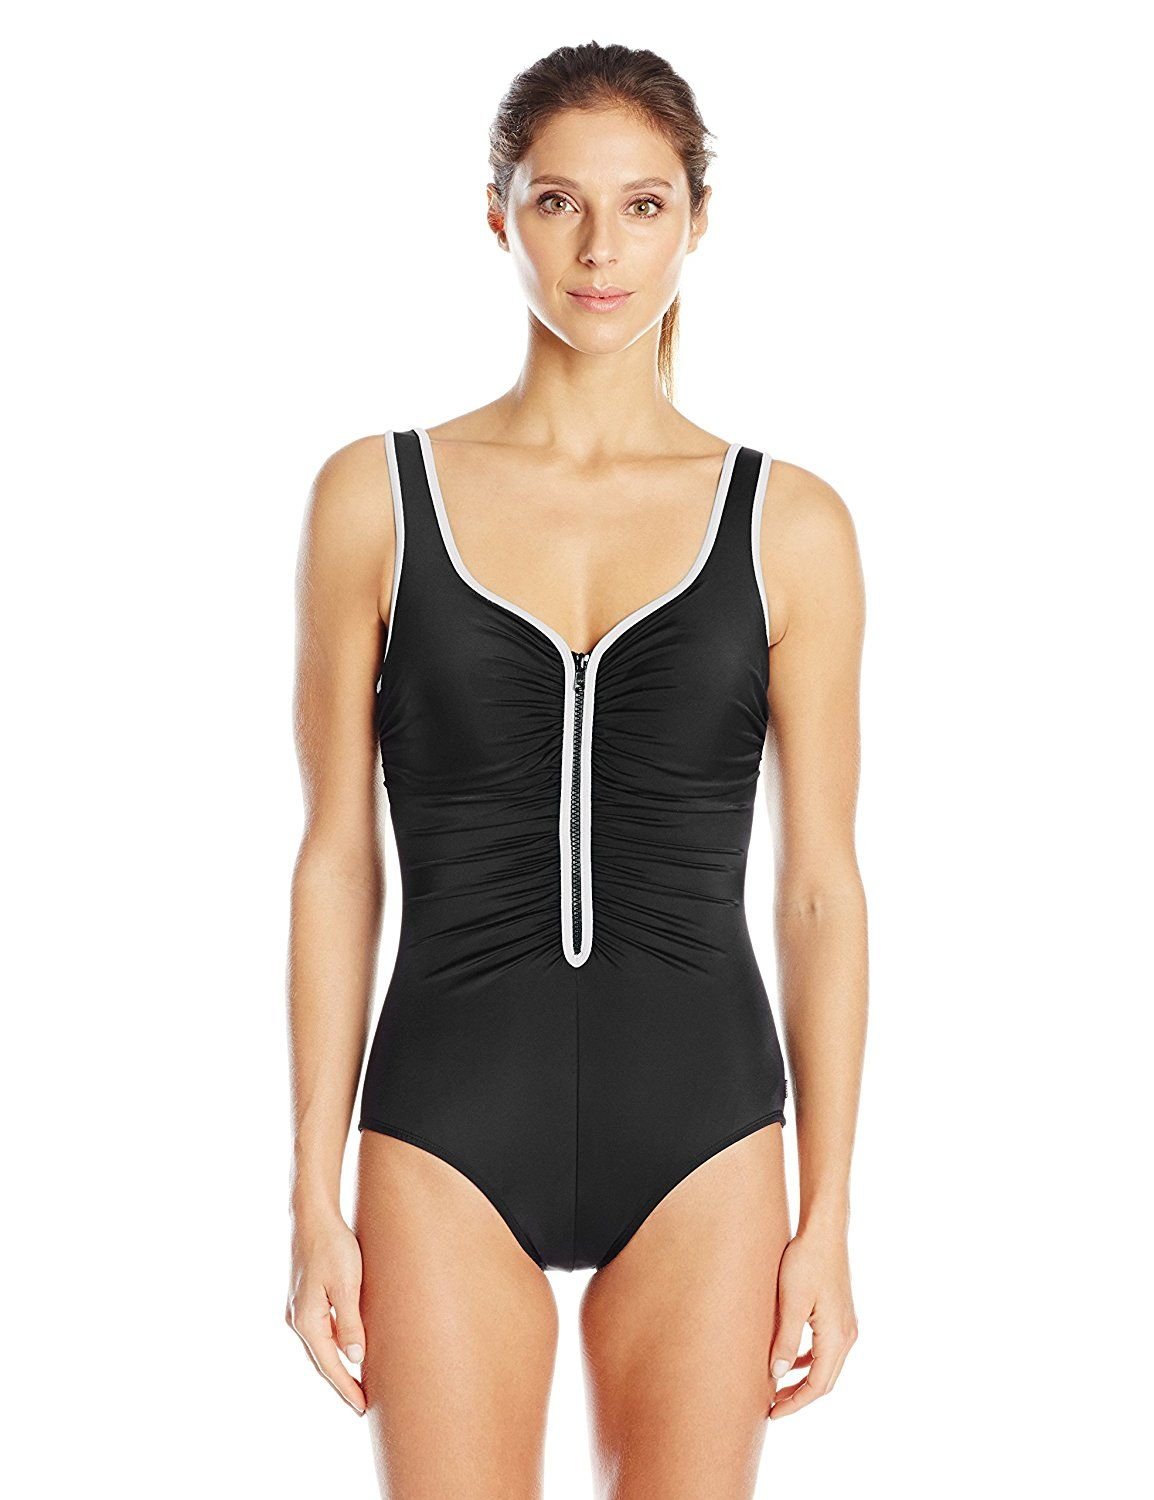 80cf372961c83 Reebok Women s Zig Zag Zipper Suit Constructed One Piece Swimsuit -- Read  more reviews of the product by visiting the link on the image.